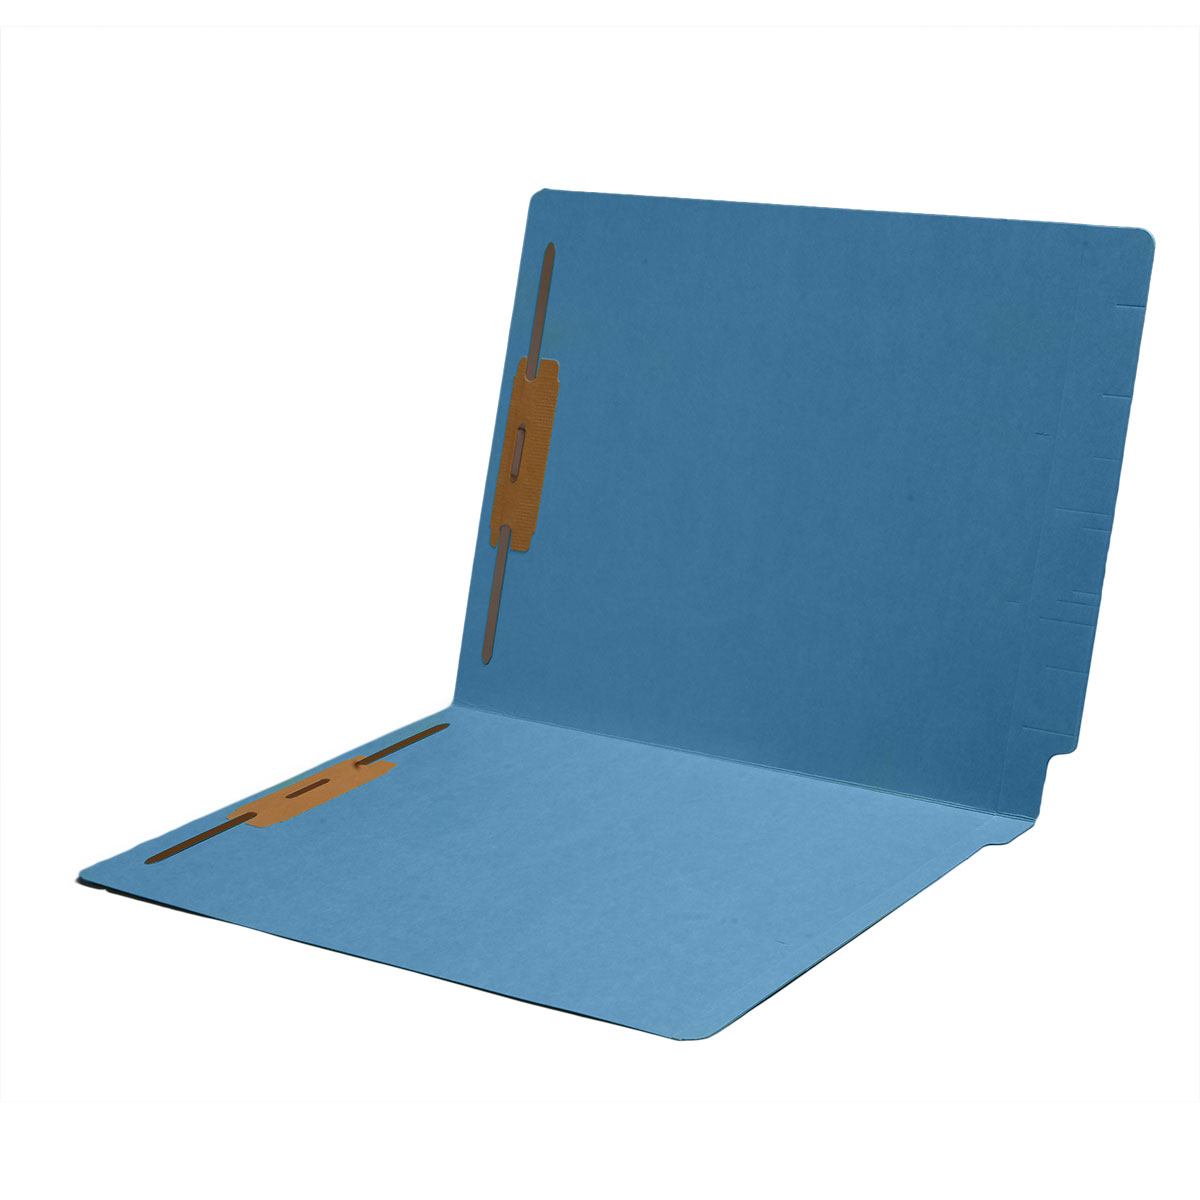 S-1602-BLU - 14 pt Color Folders, Full Cut 2-Ply End Tab, Letter Size, 2 Fasteners in Pos #1 & #3, Blue (Box of 50)